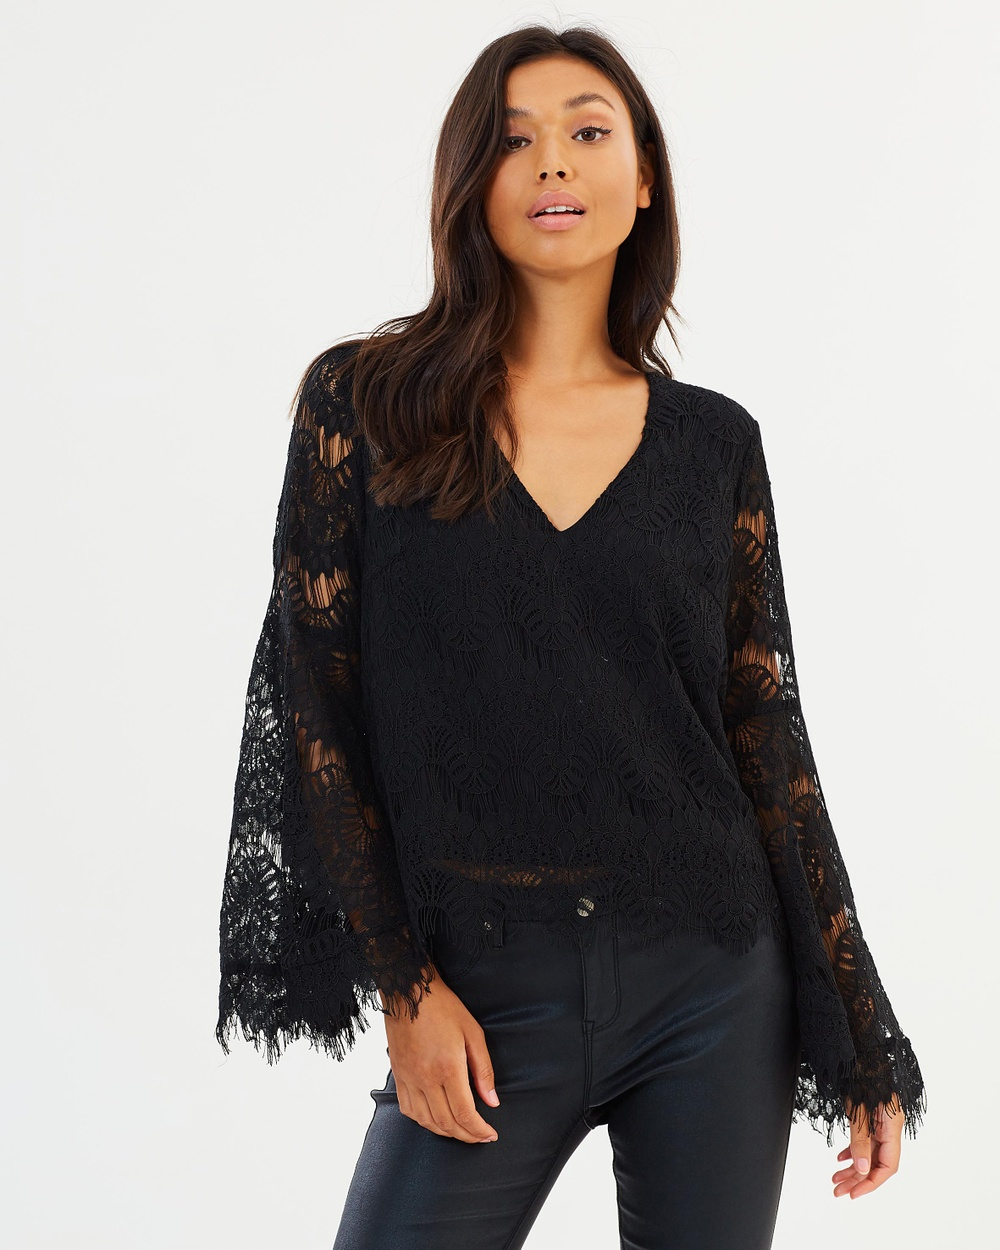 MINKPINK Tainted Love Lace Top Tops Black Tainted Love Lace Top